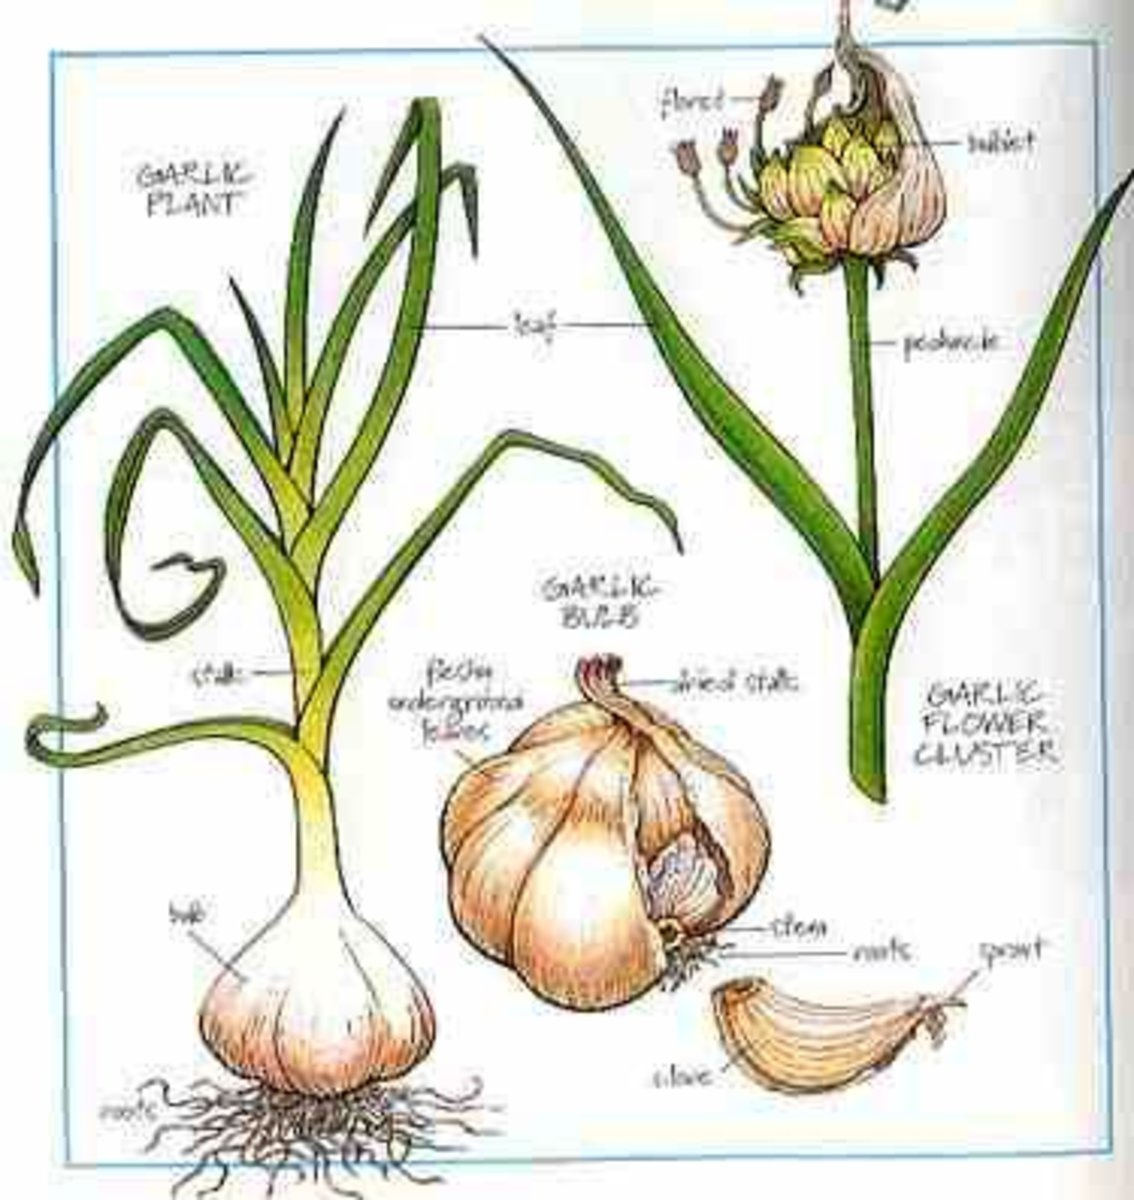 Picture of a garlic plant showing the characteristics of bulbous plants like onion grass.